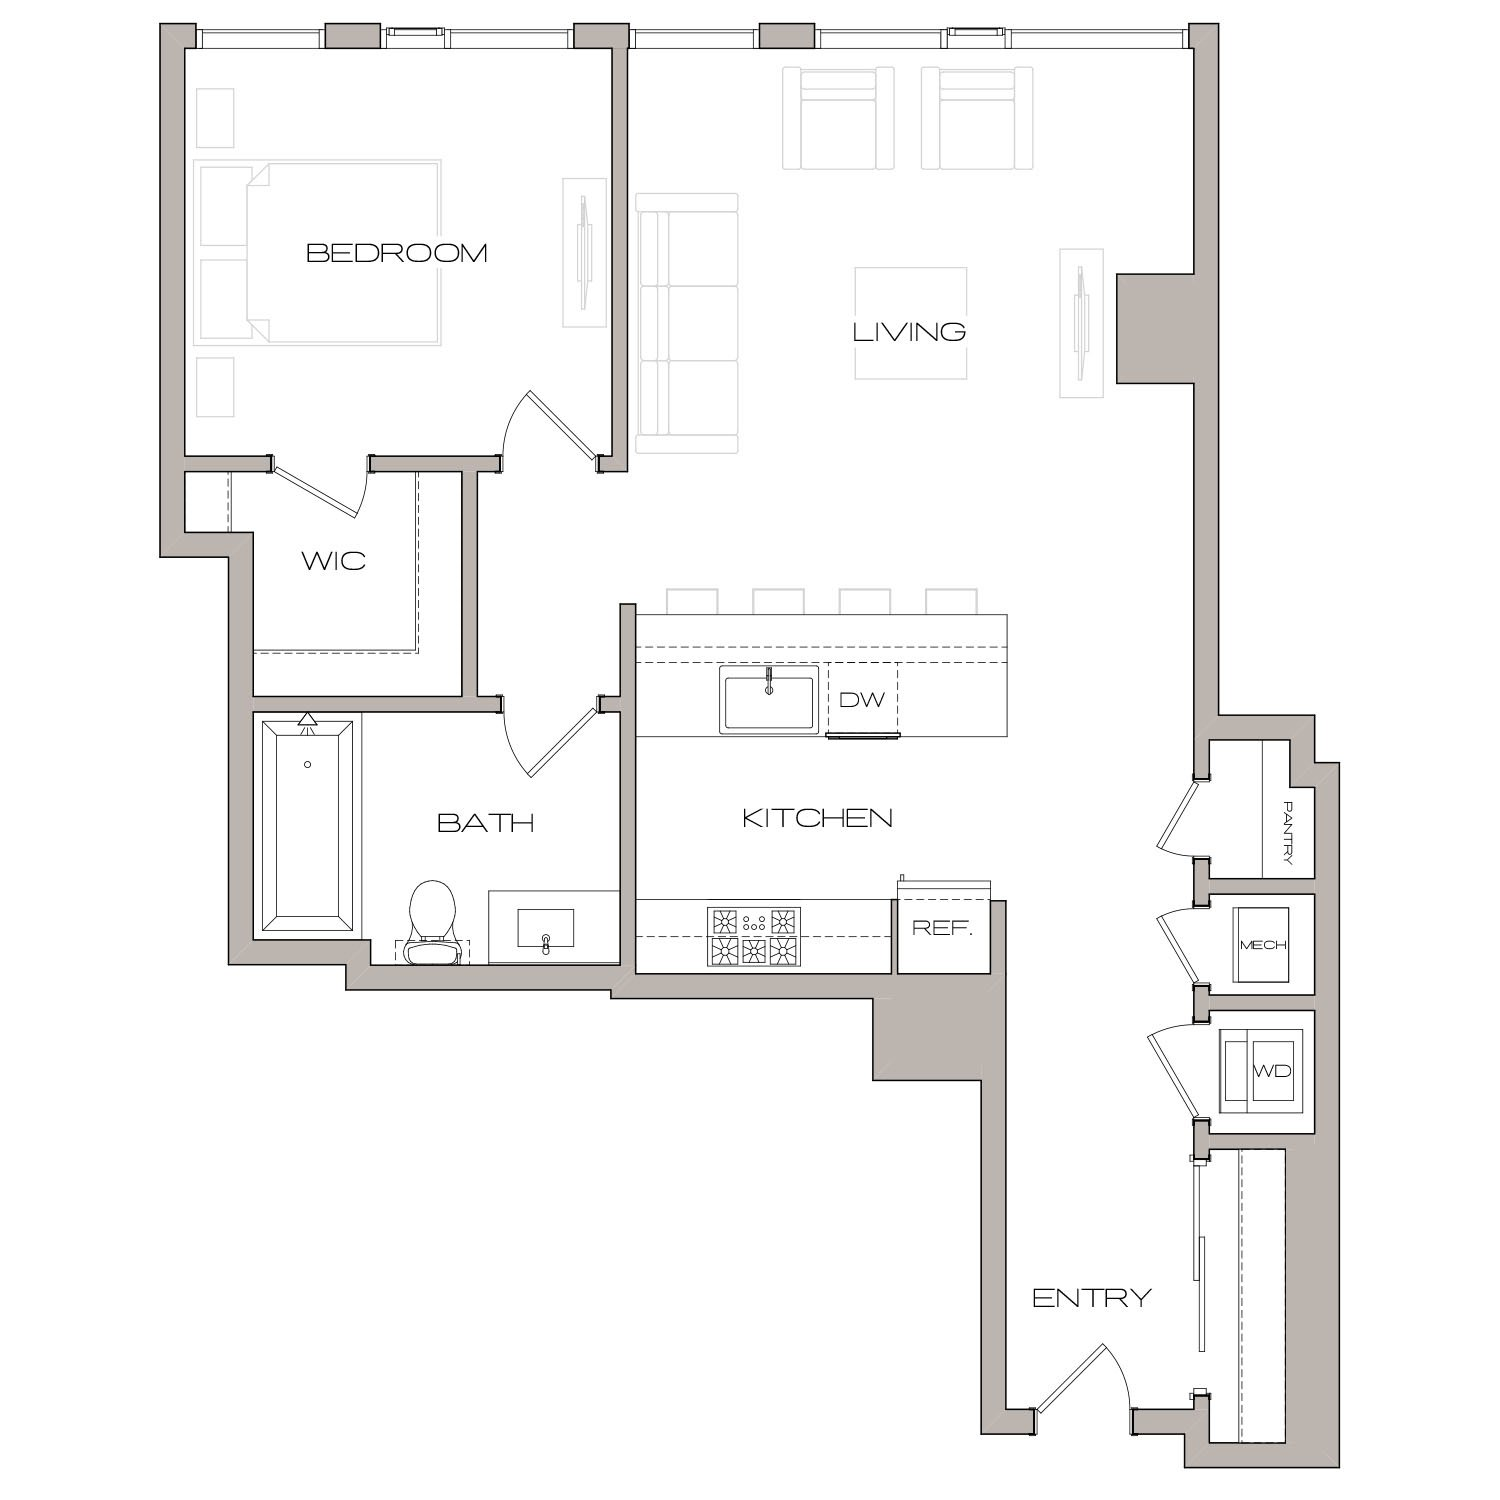 A 3 floor plan diagram. One bedroom, one bathroom, an open kitchen and living area, and a washer dryer.